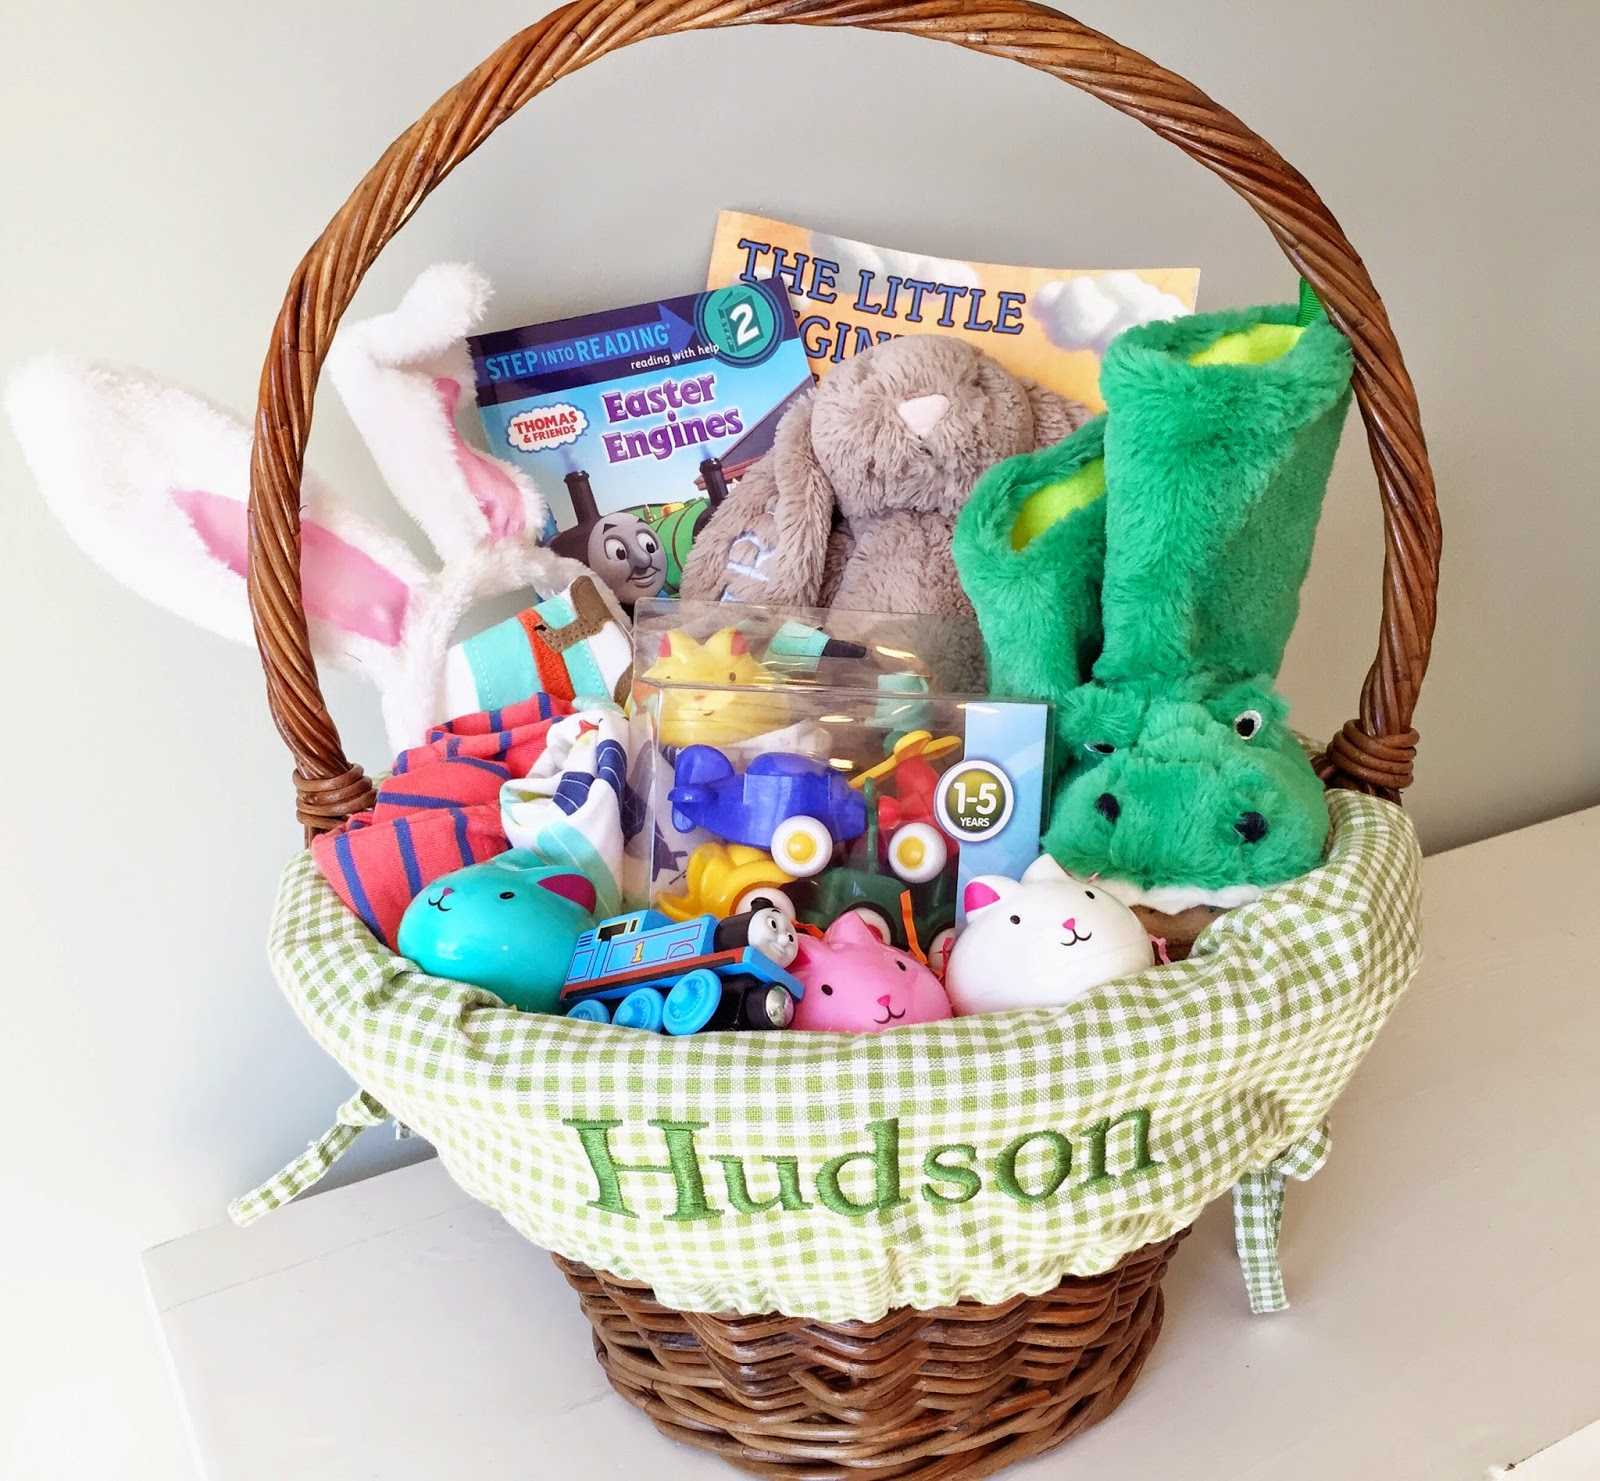 Hudsons easter basket the girl in the red shoes hudsons easter basket negle Image collections